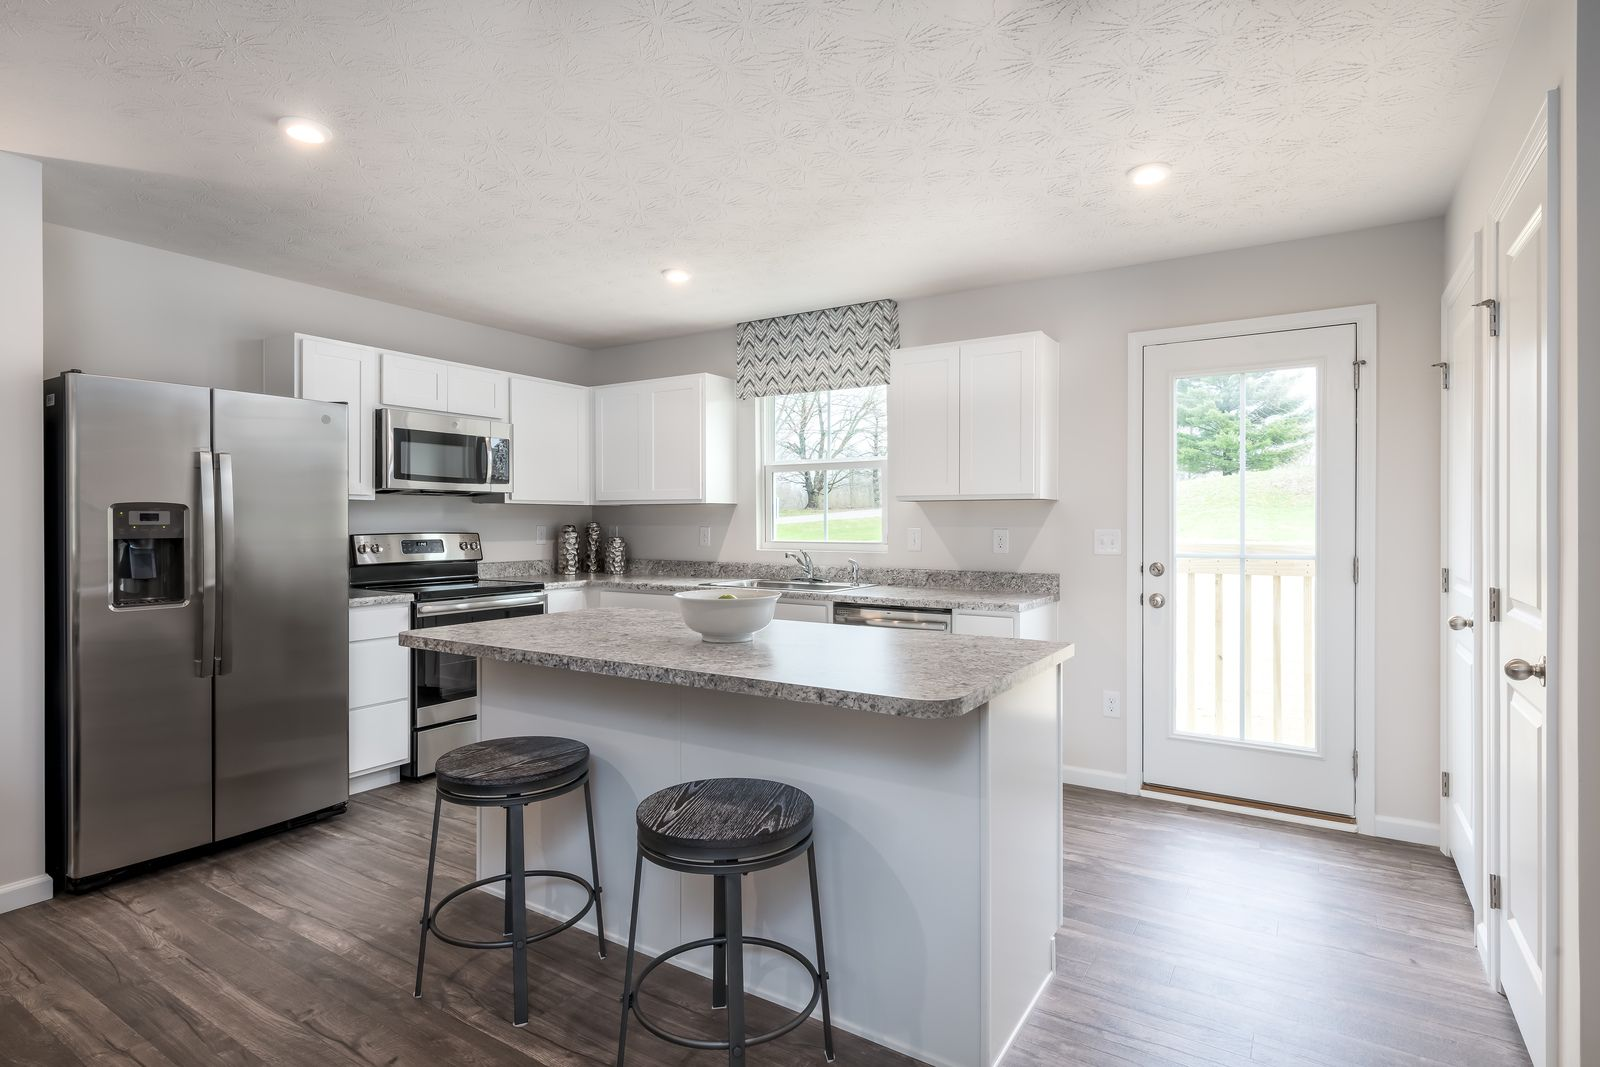 Kitchen featured in the Birch By Ryan Homes in Akron, OH